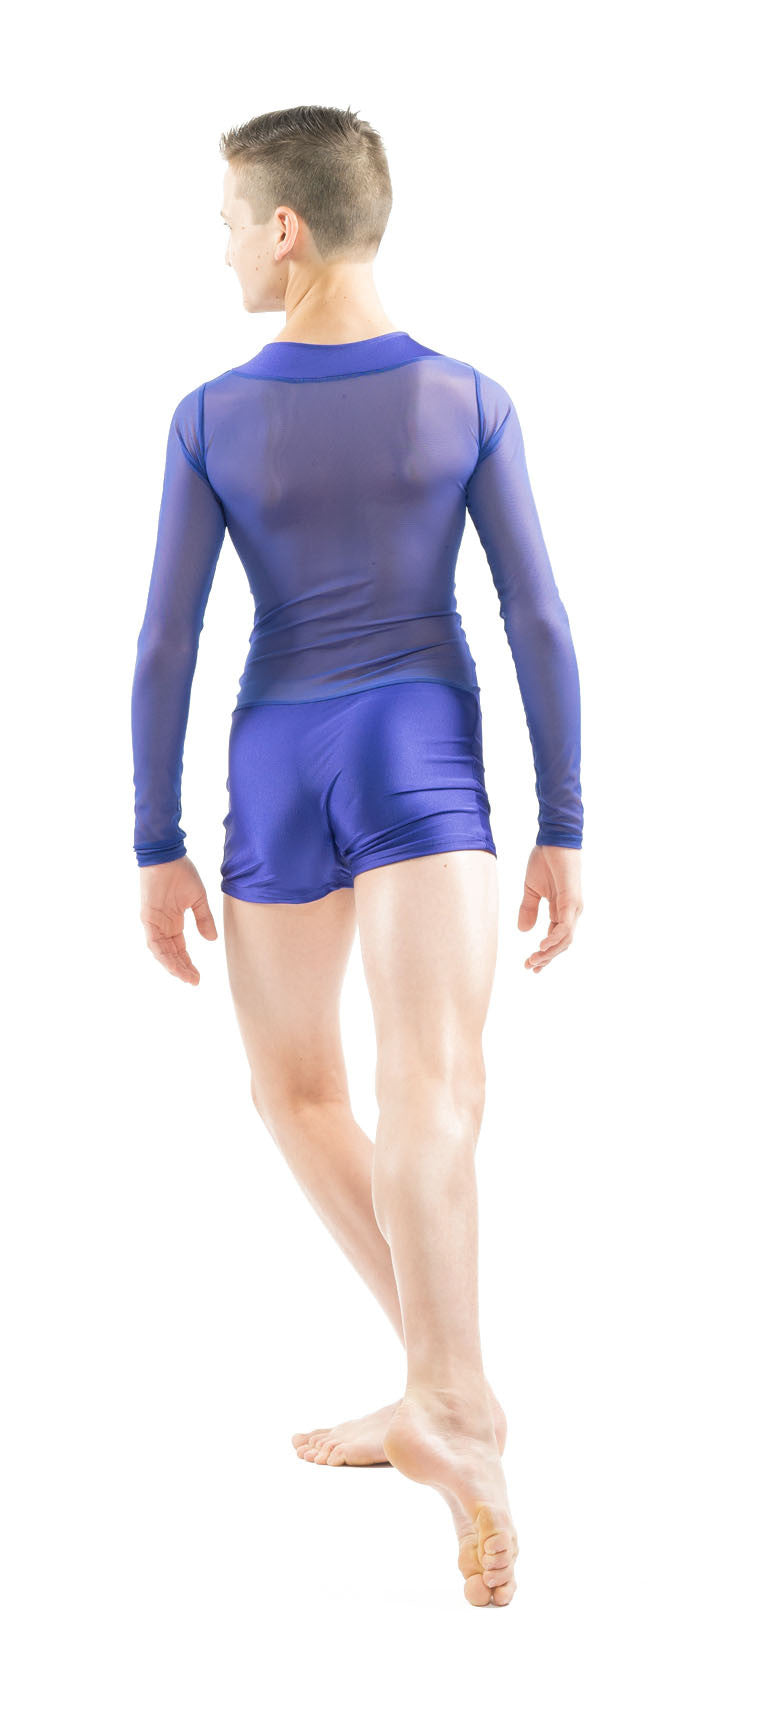 Men's One Piece Zipper Front - Patrick J Design.com, dance wear, costum costumes, dance